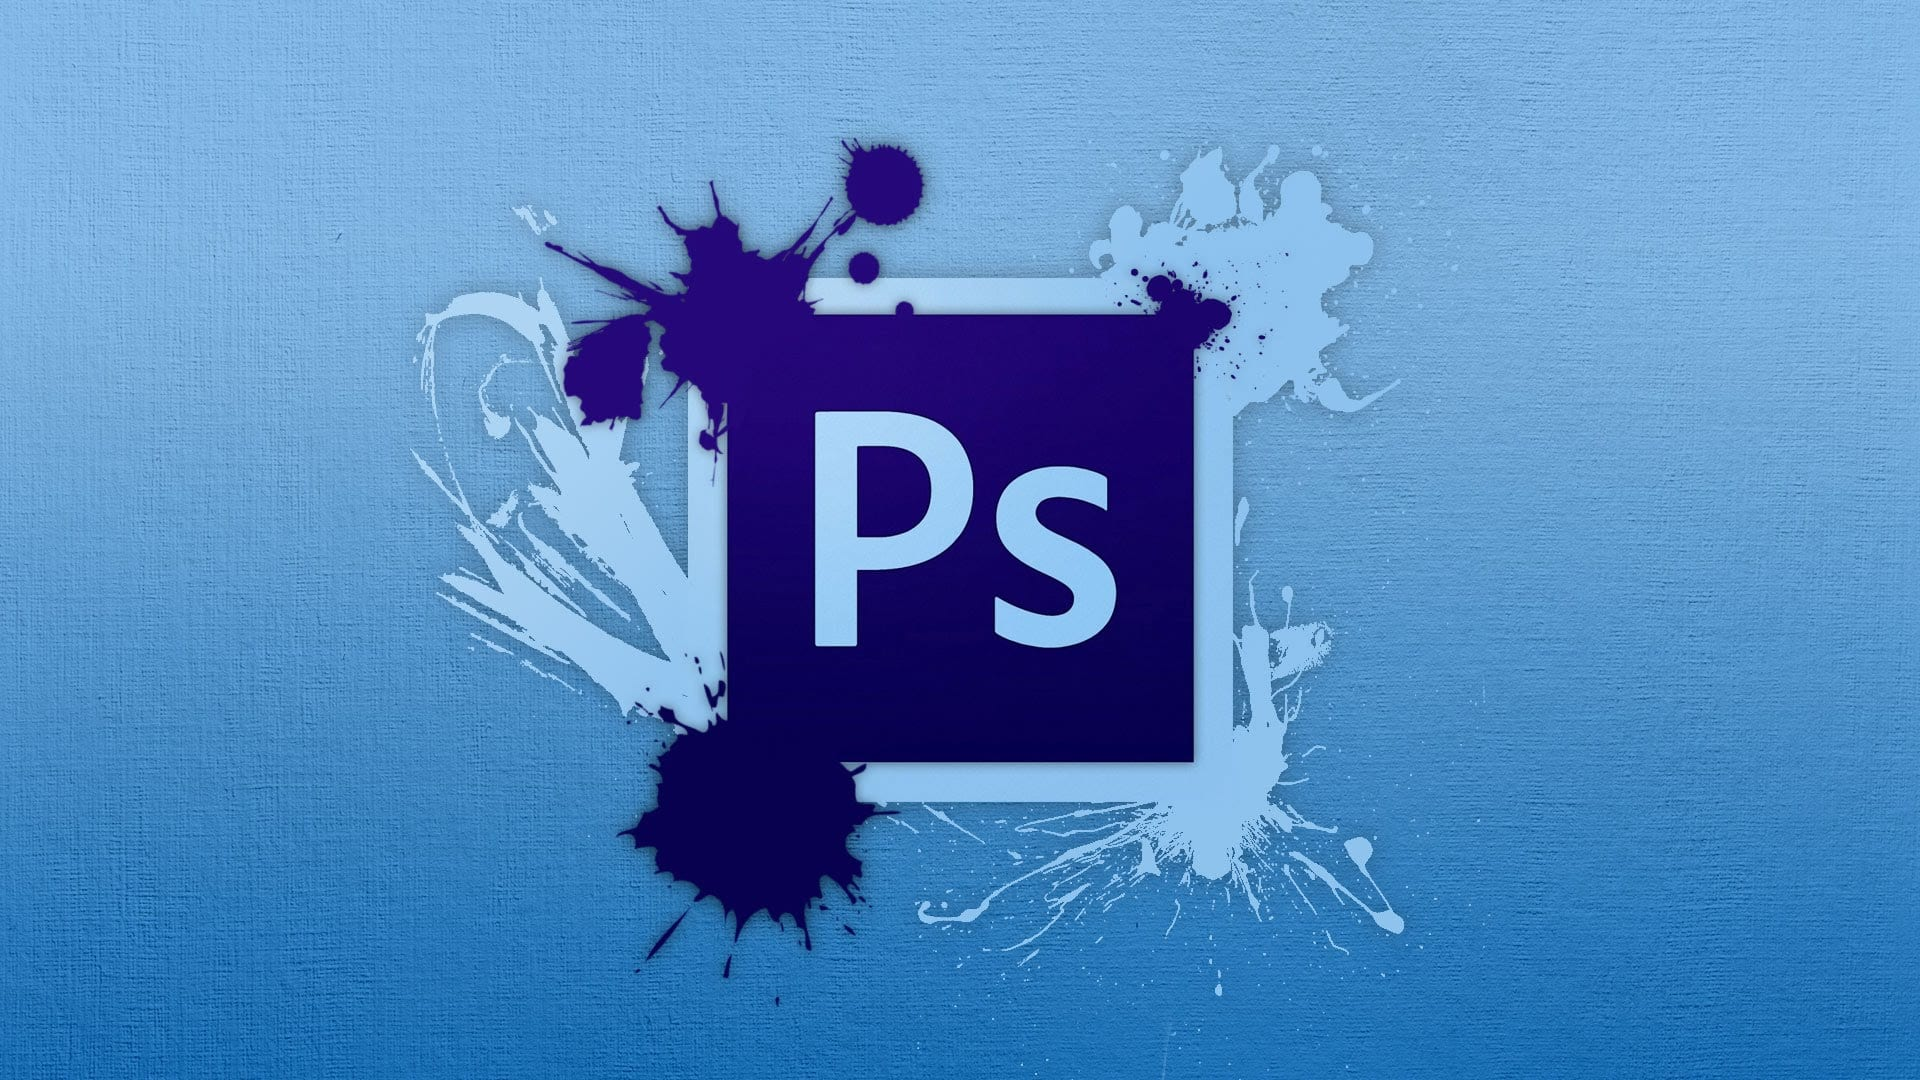 Photoshop Classes Give You Photoshop Classes On Skype